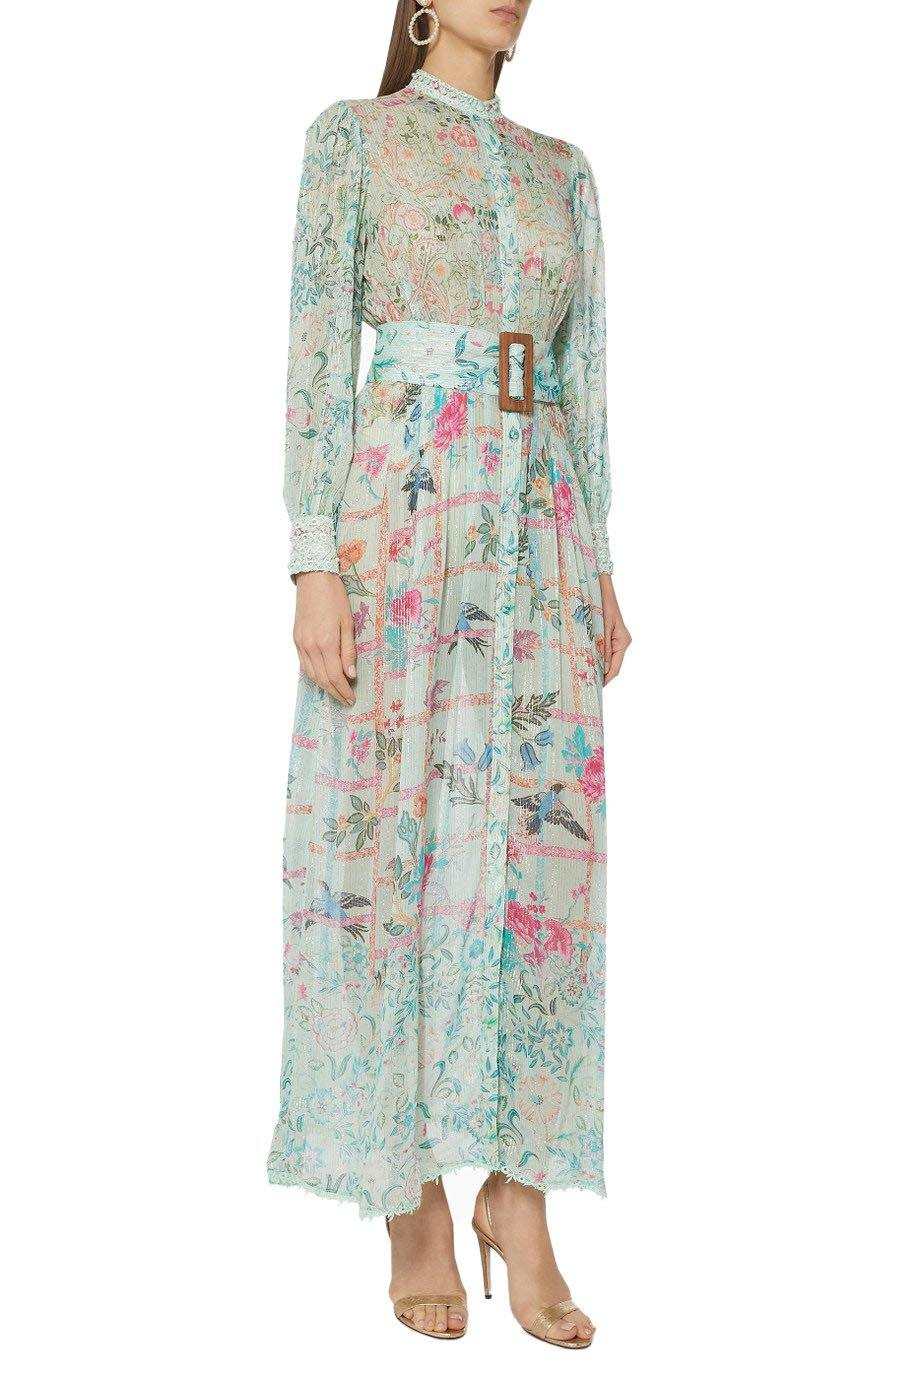 The 'Cosmic' Long Dress - Mint - Wheat Boutique